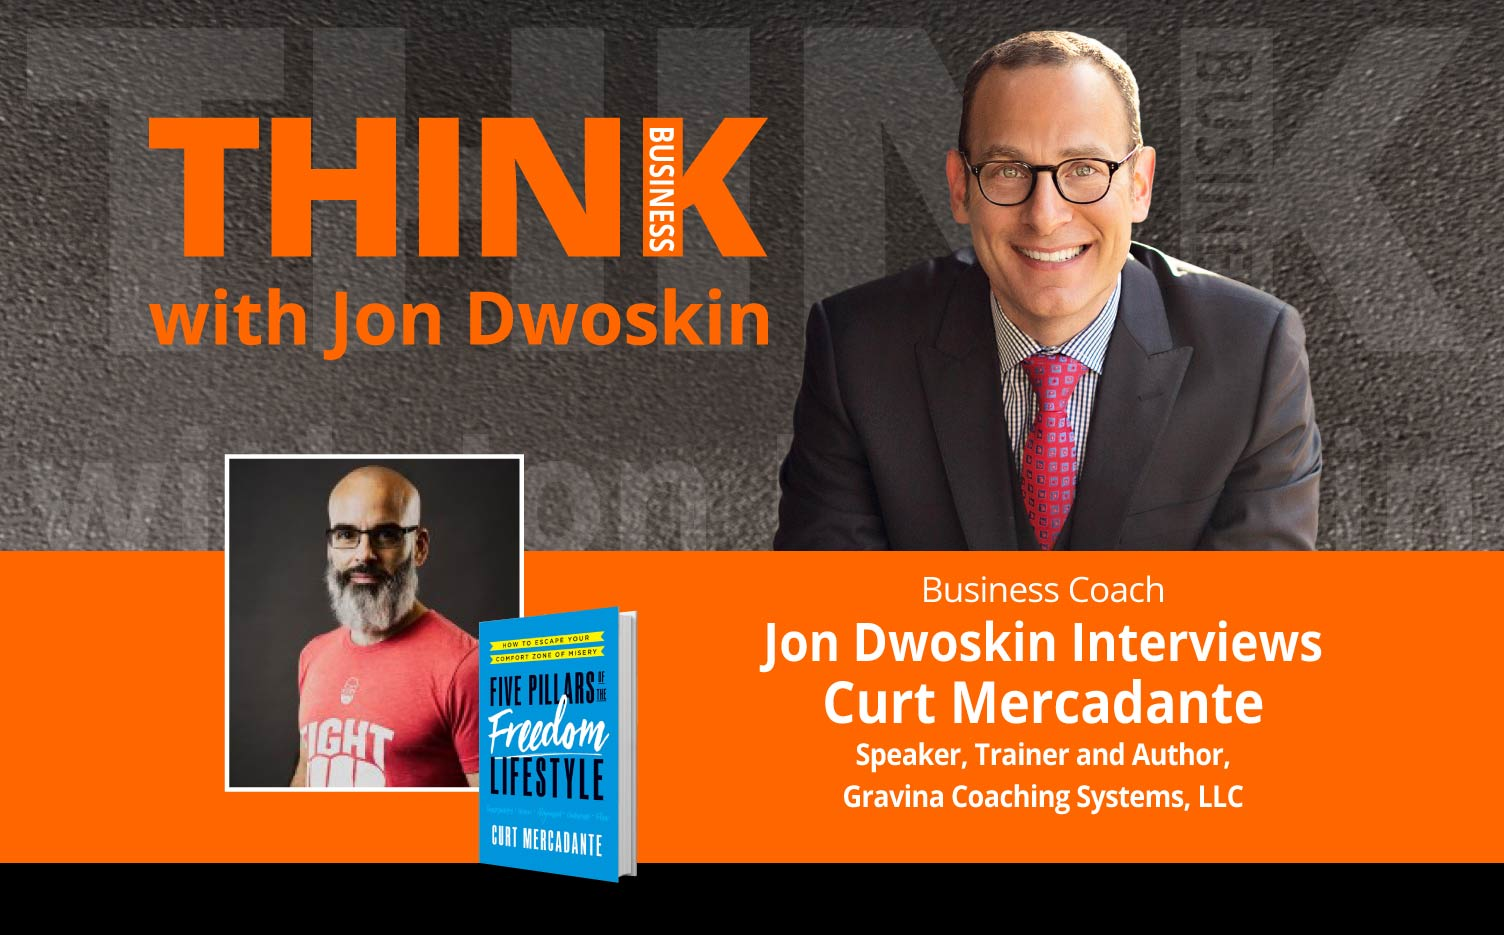 THINK Business Podcast: Jon Dwoskin Interviews Curt Mercadante, Speaker, Trainer and Author, Gravina Coaching Systems, LLC